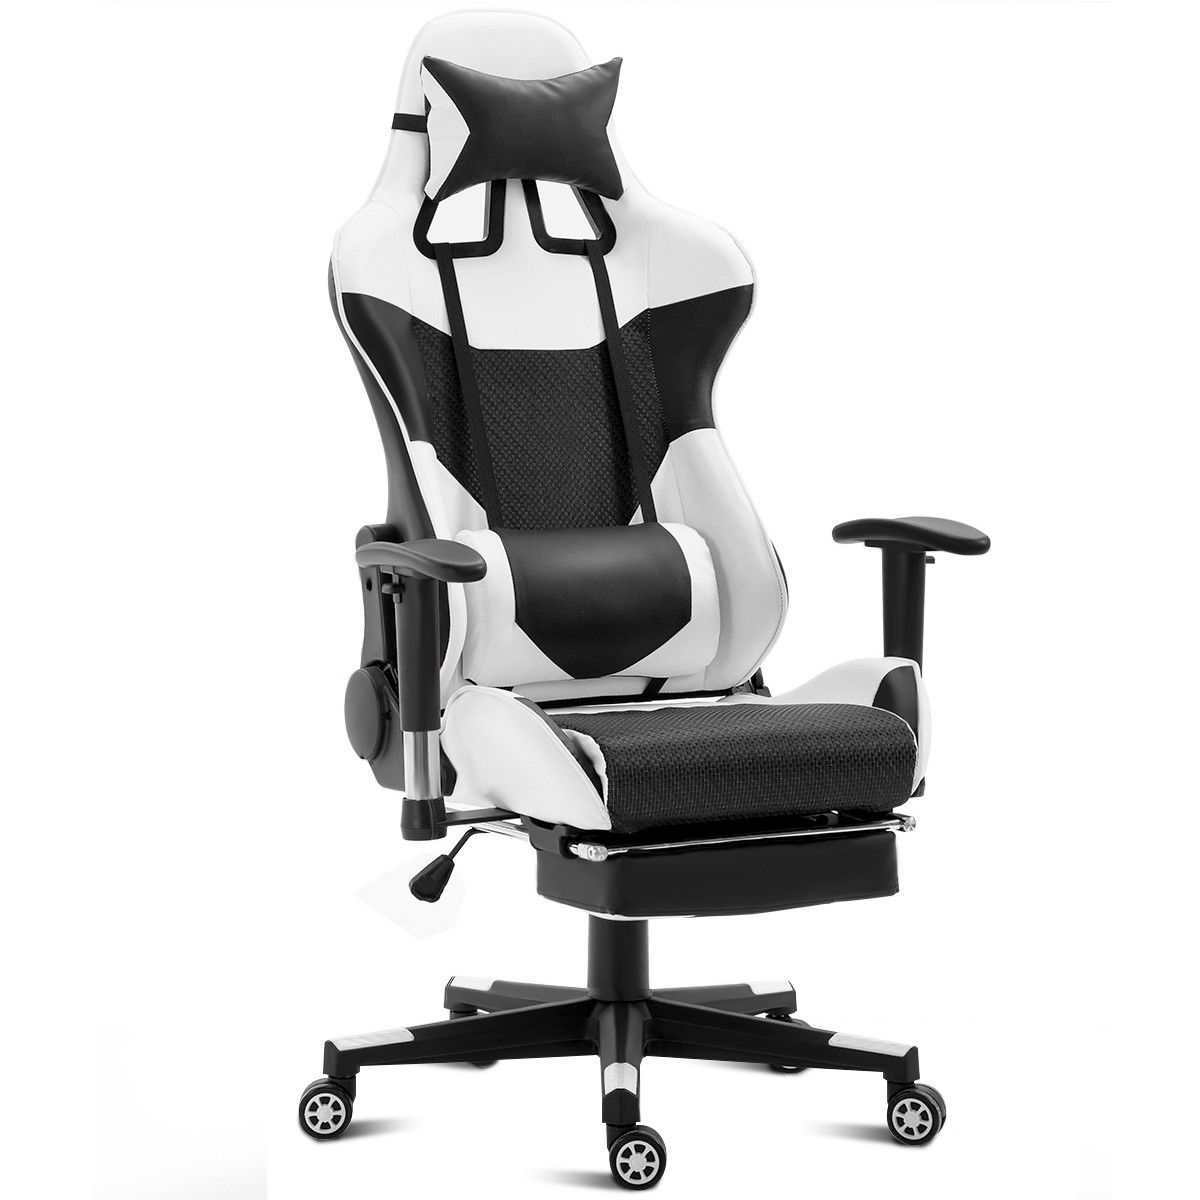 Costway Ergonomic Gaming Chair High Back Racing Office Chair w